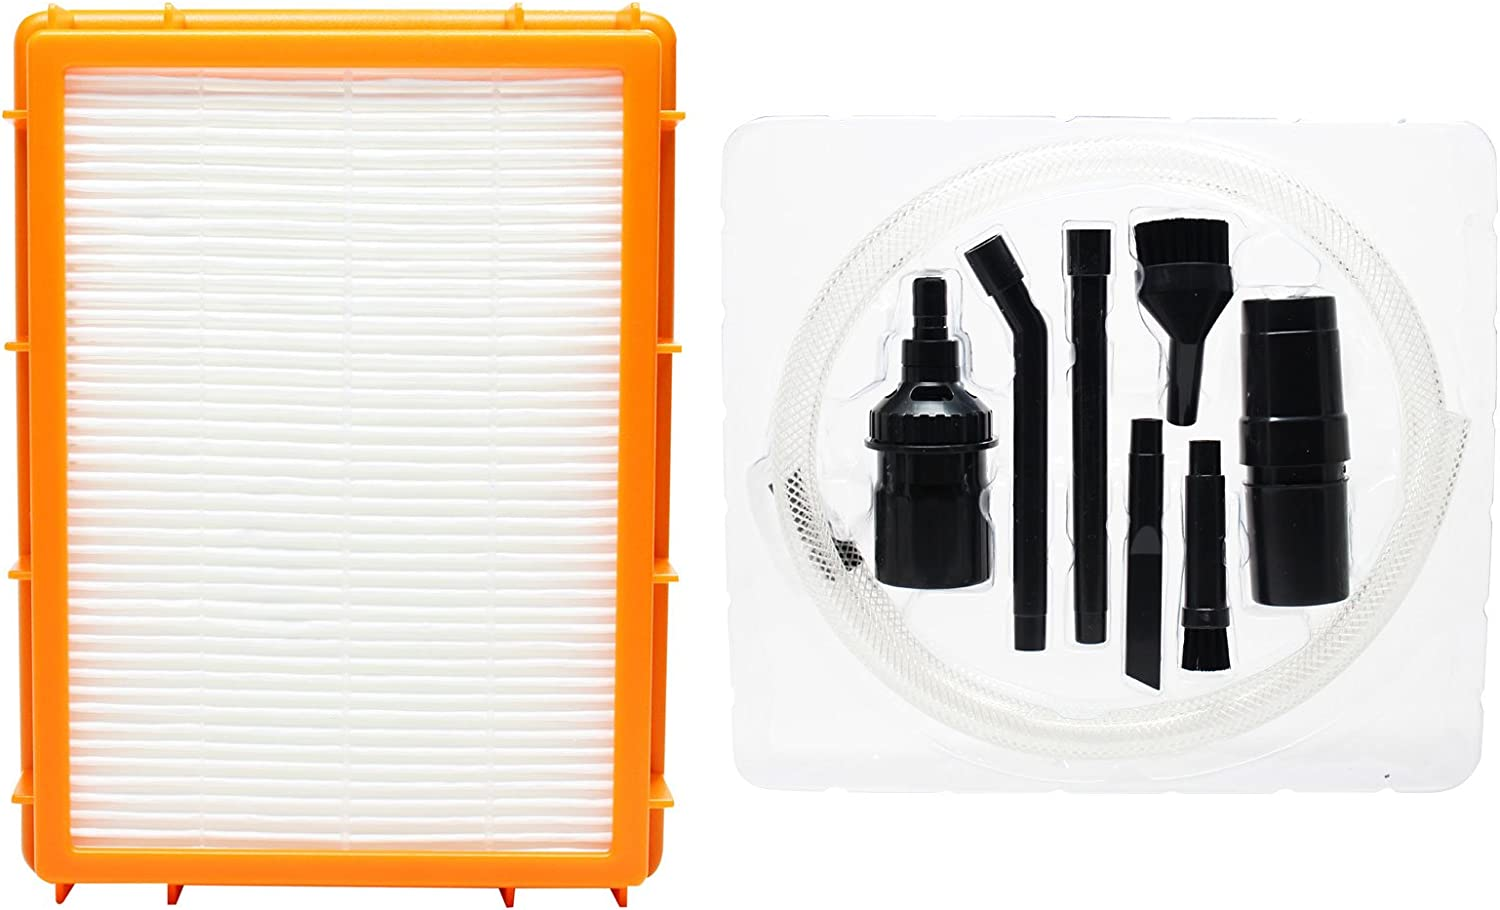 Upstart Battery Replacement for Eureka Boss SmartVac Pet Lover 4870SZX Vacuum HEPA Filter with 7-Piece Micro Vacuum Attachment Kit - Compatible with Eureka HF-2 HEPA Filter